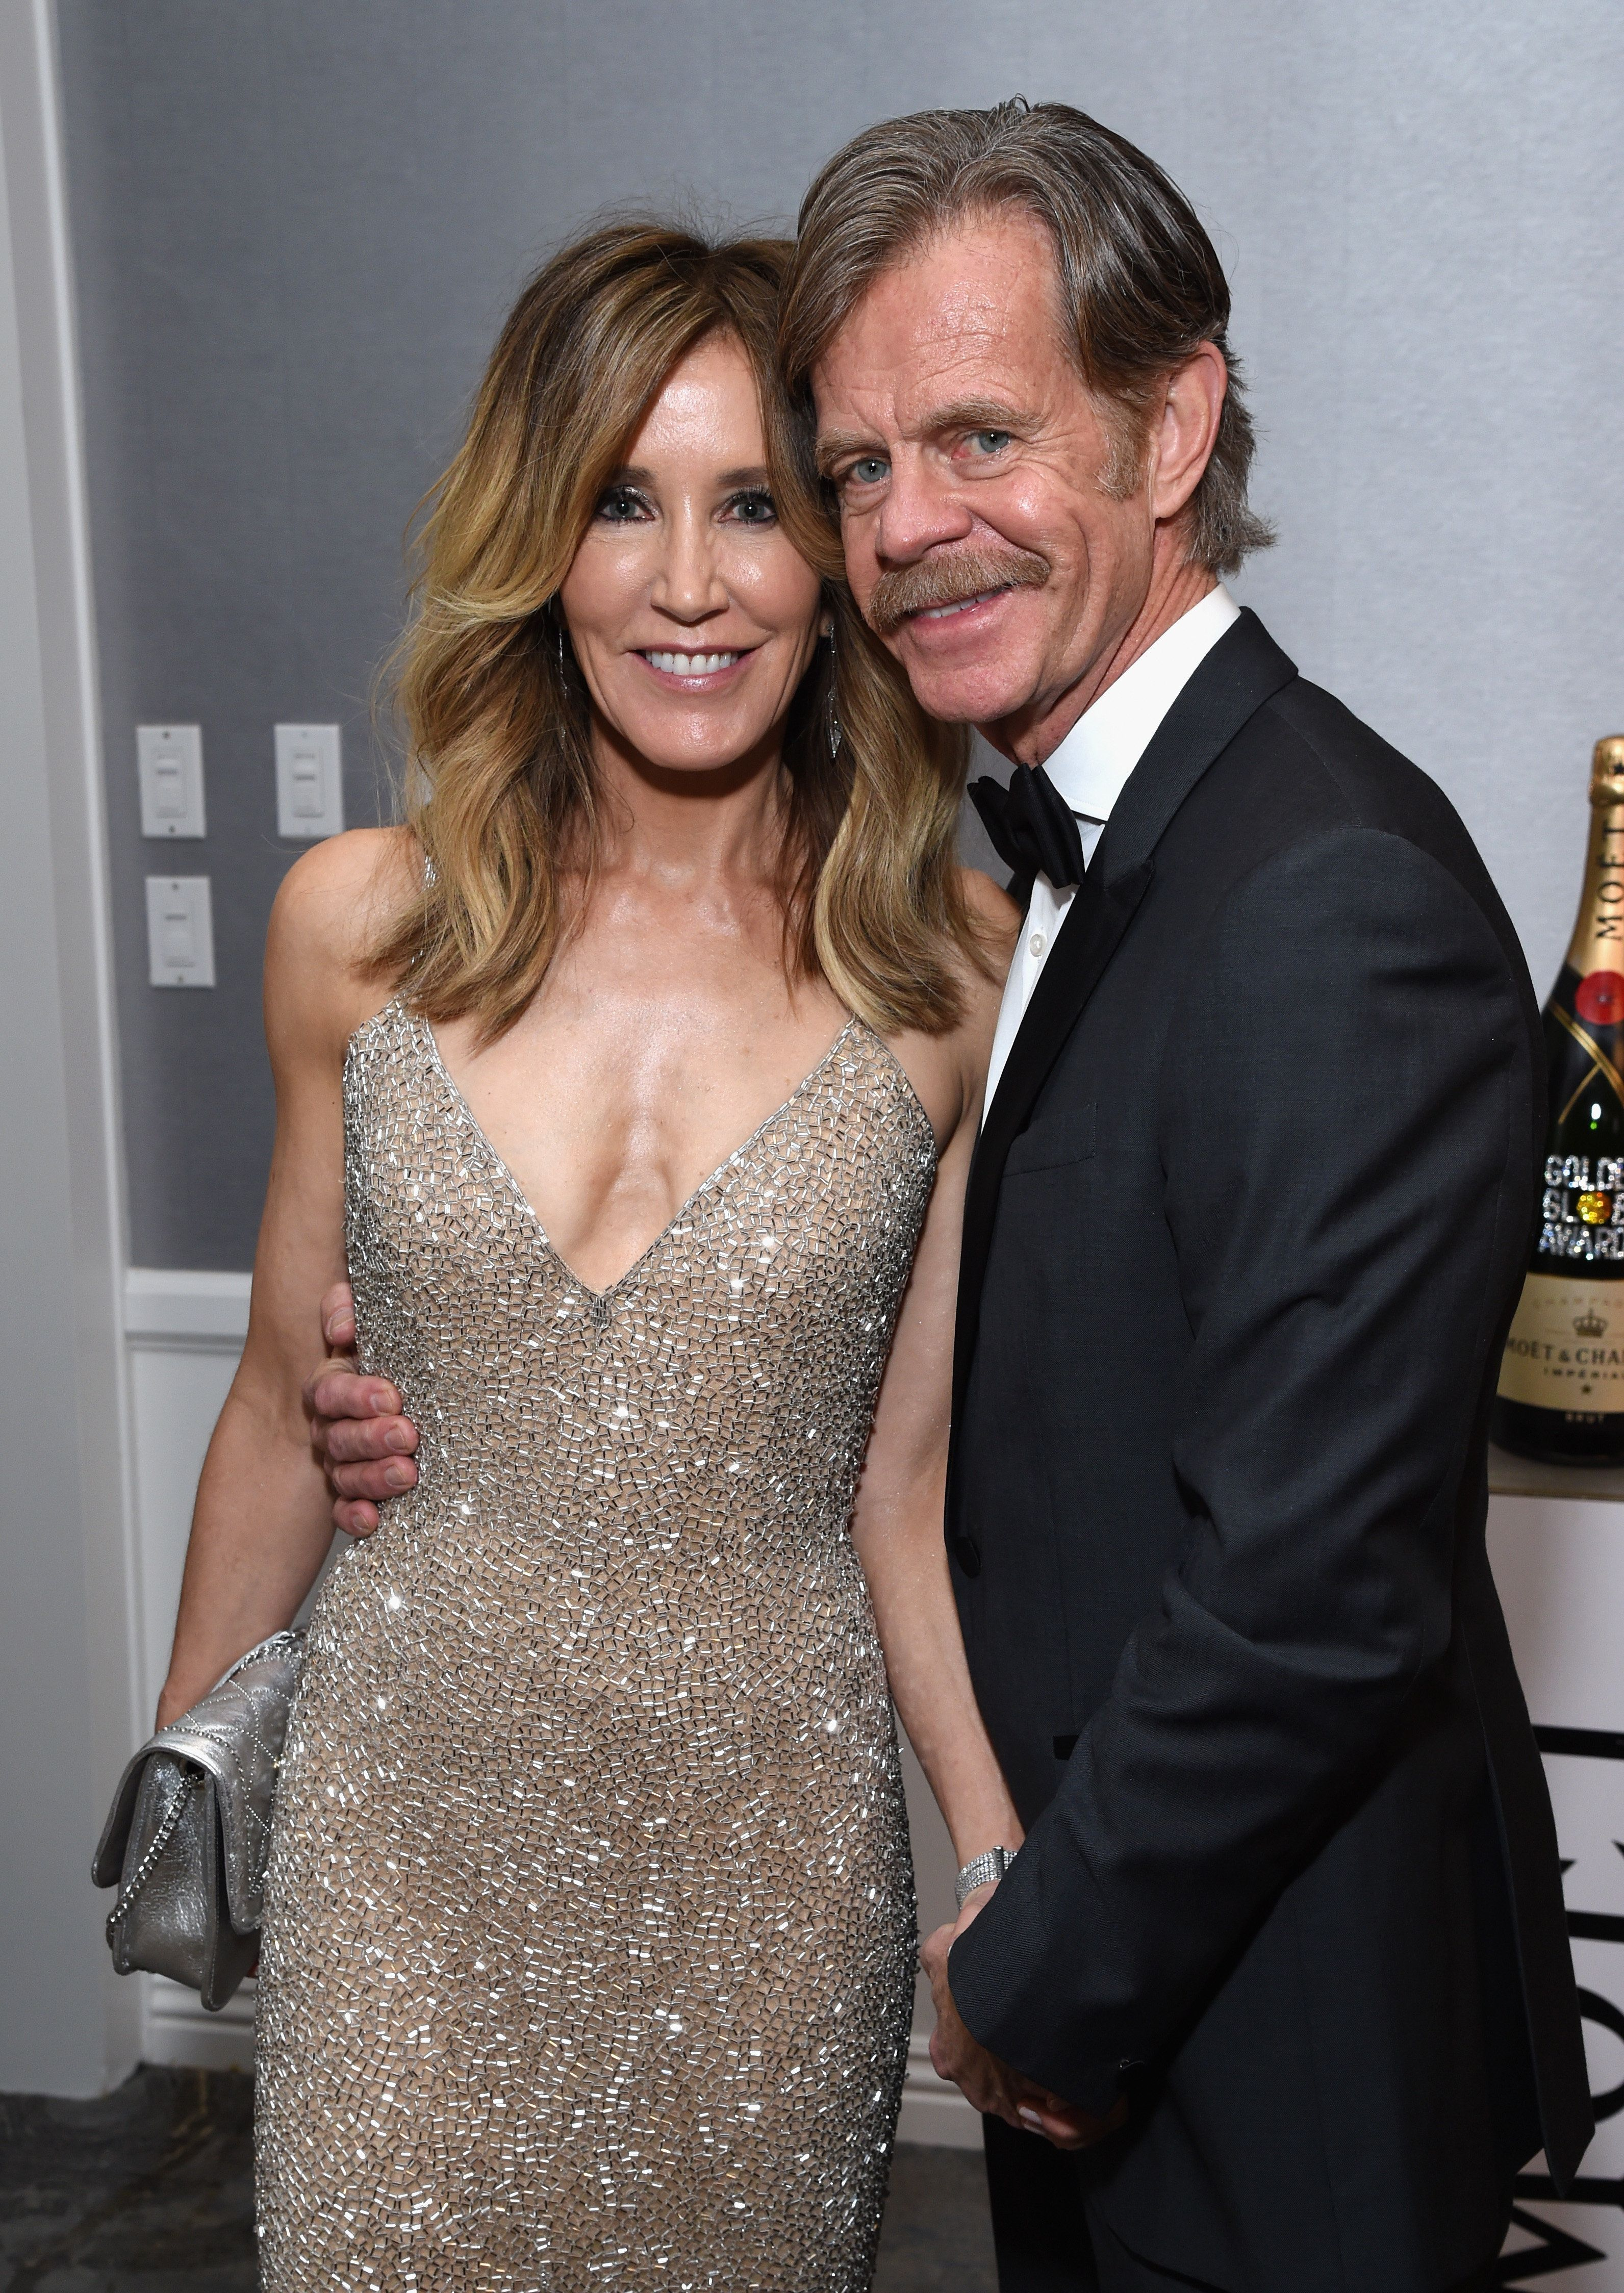 Felicity Huffman and William H. Macy attend at the Golden Globe Awards in January.